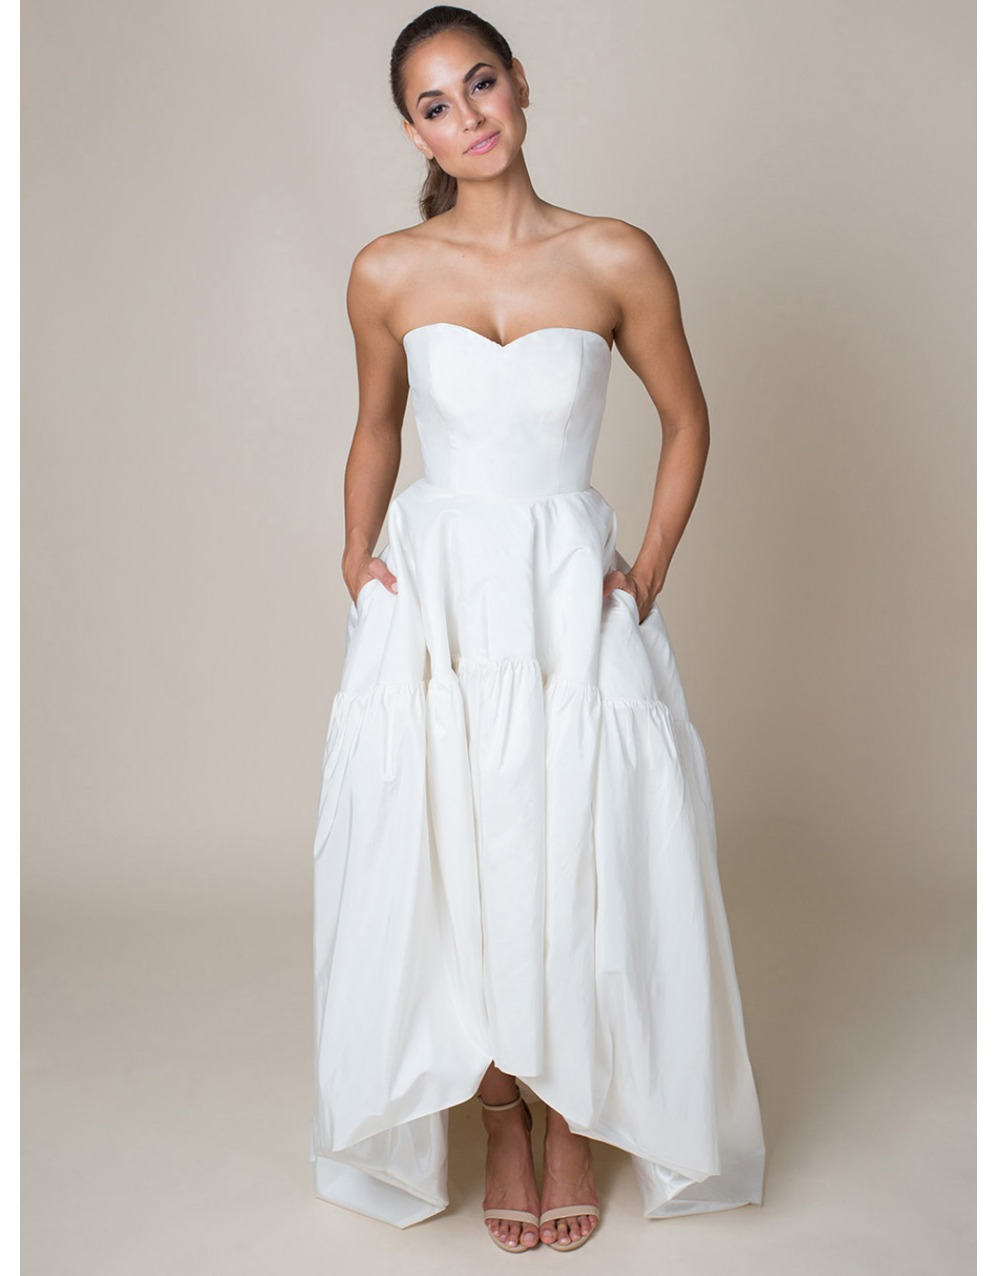 high low wedding dresses Style Embroidered Lace High Low Bridal Gown Justin Alexander Signature